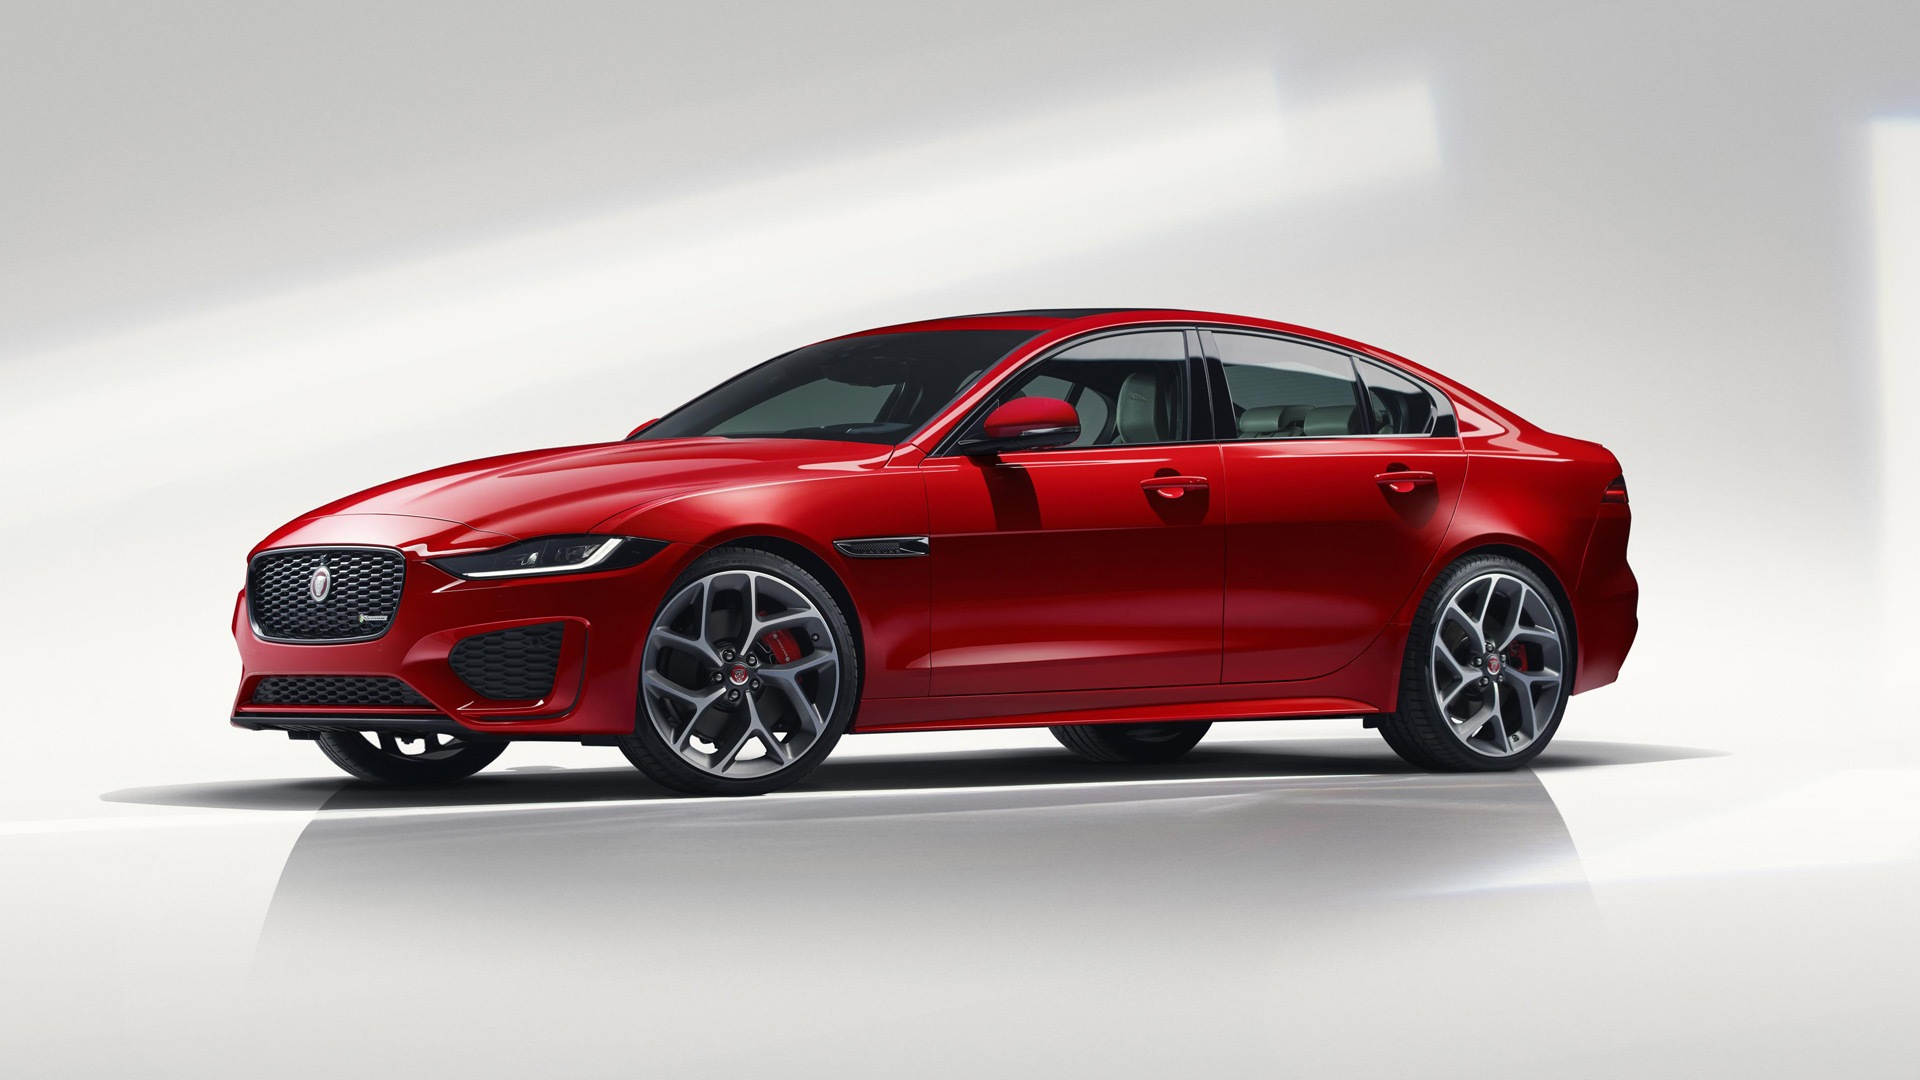 61 The Best 2020 All Jaguar Xe Sedan Pricing